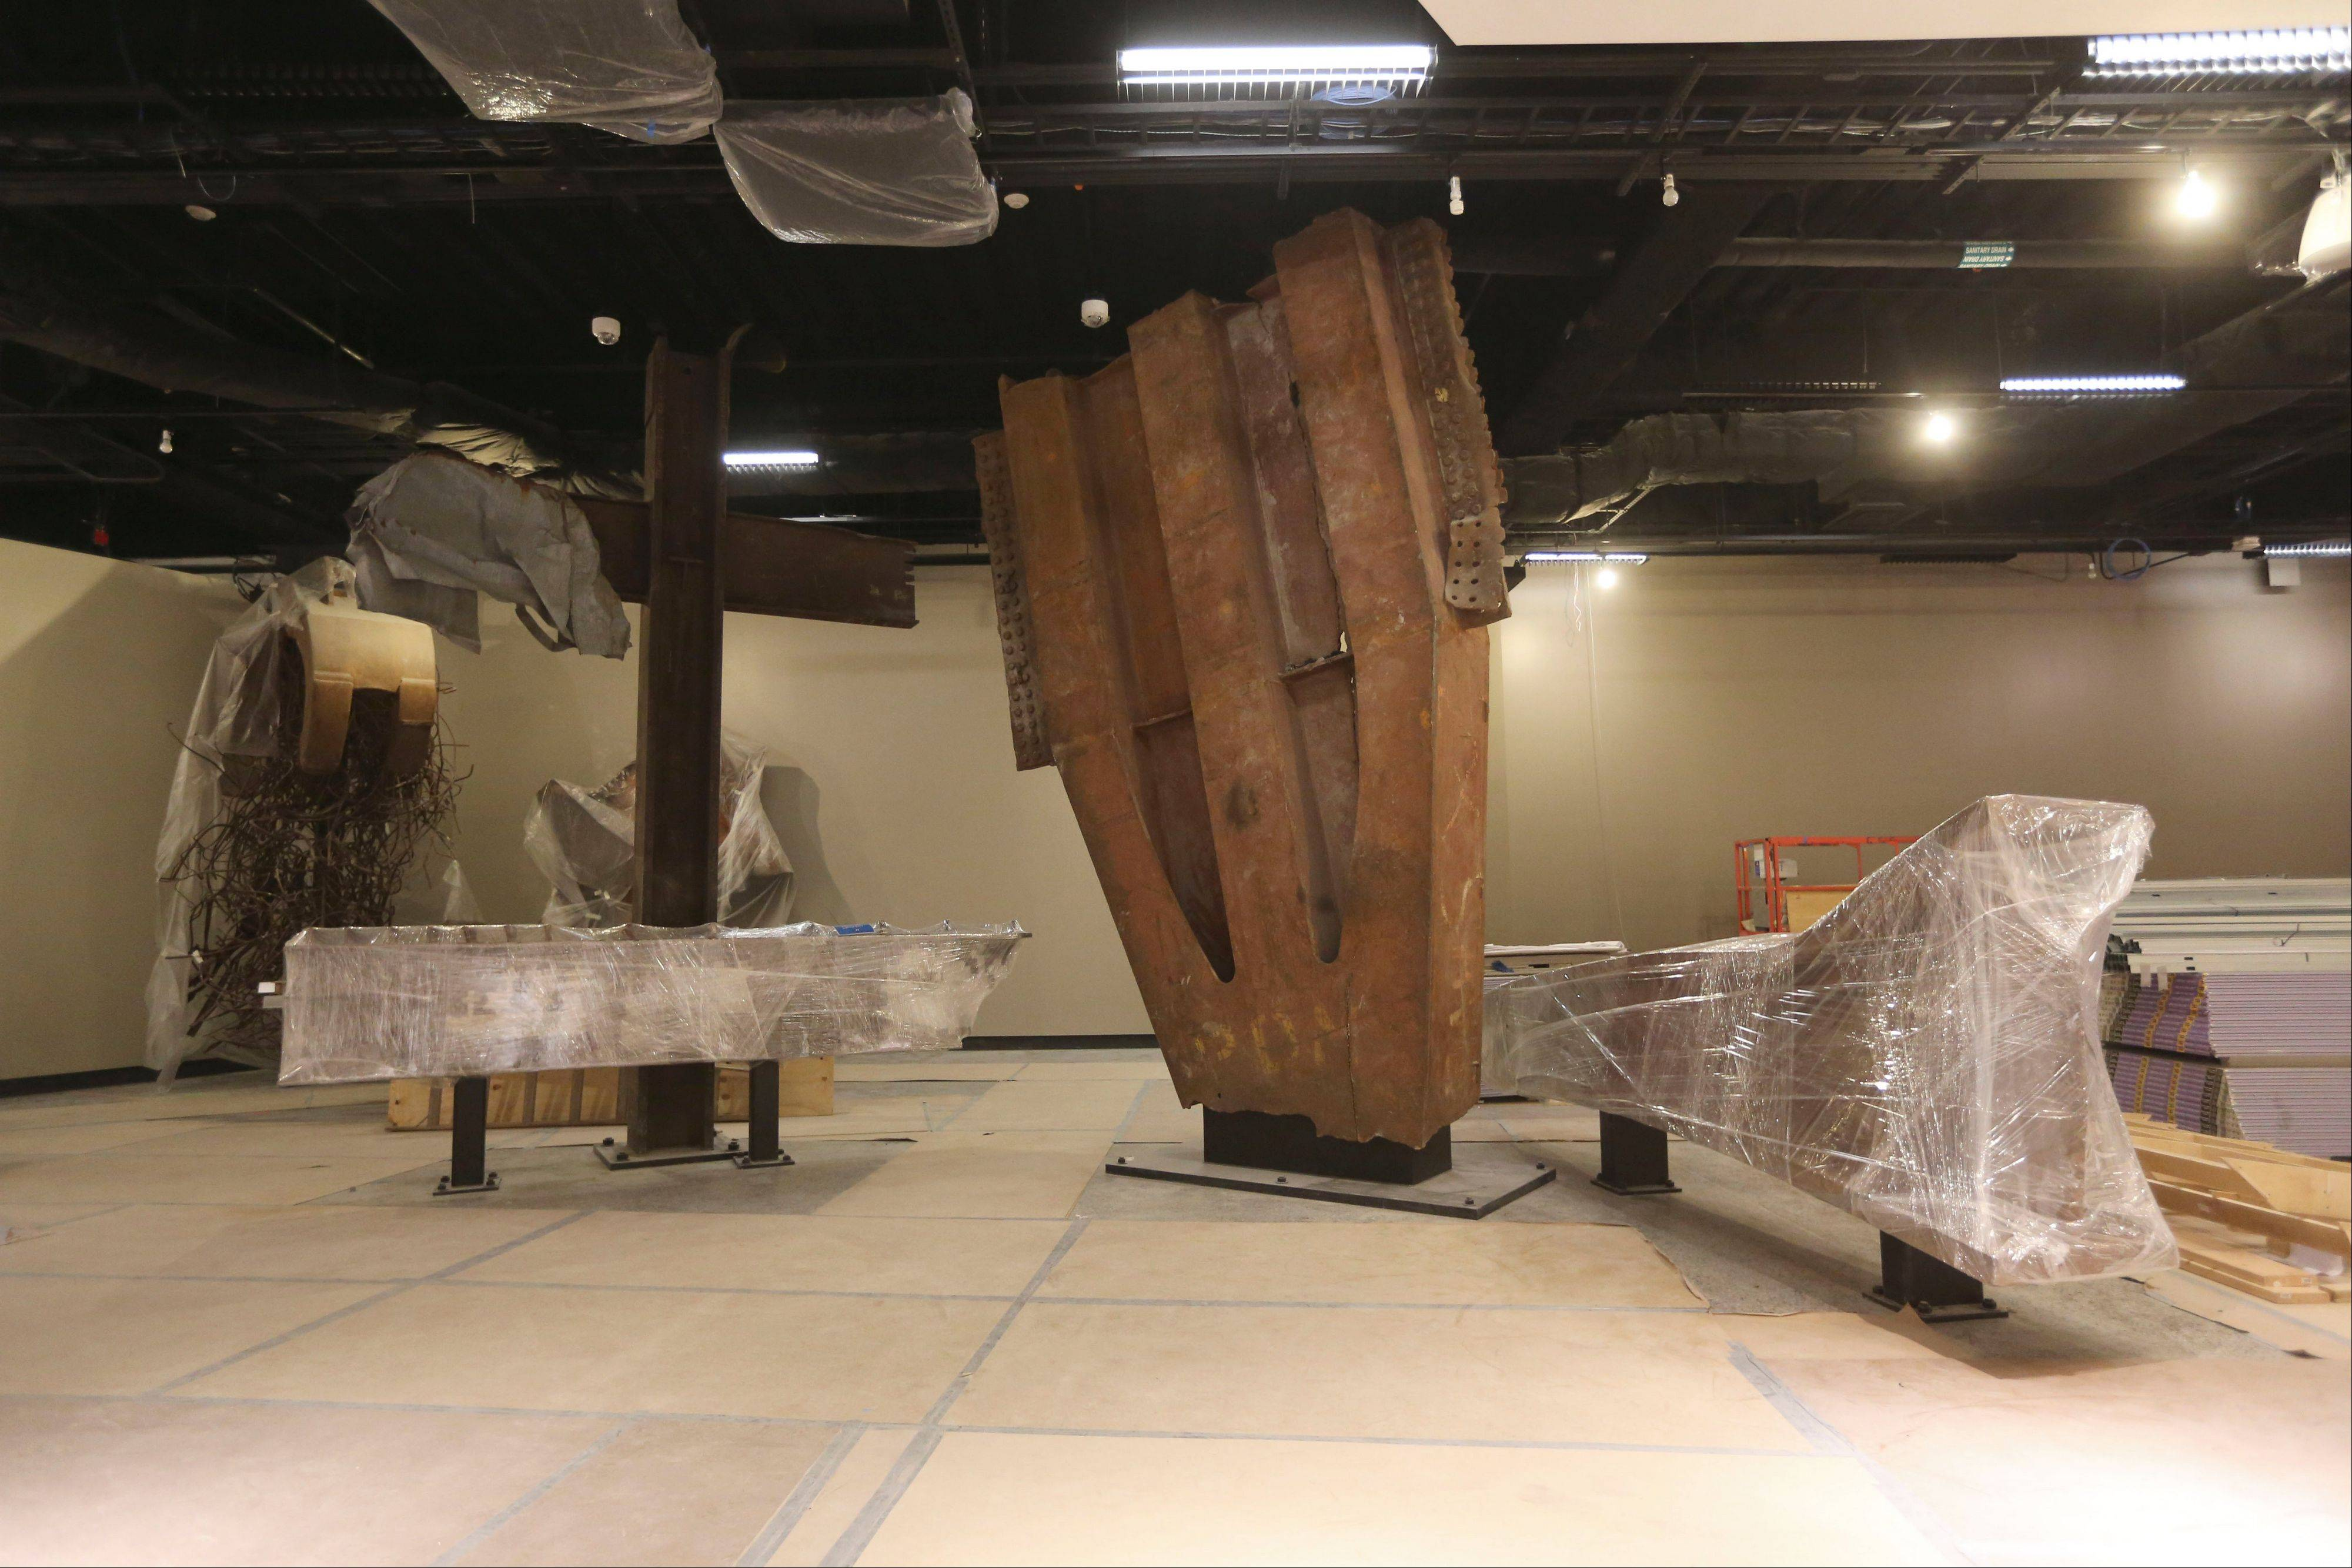 The 'Cross', left, intersecting steel beams found in the rubble of 6 World Trade Center and a fragment of a trident column, center, one of 84 that formed the exterior structure of each tower are displayed during a media tour Friday of the National September 11 Memorial and Museum.